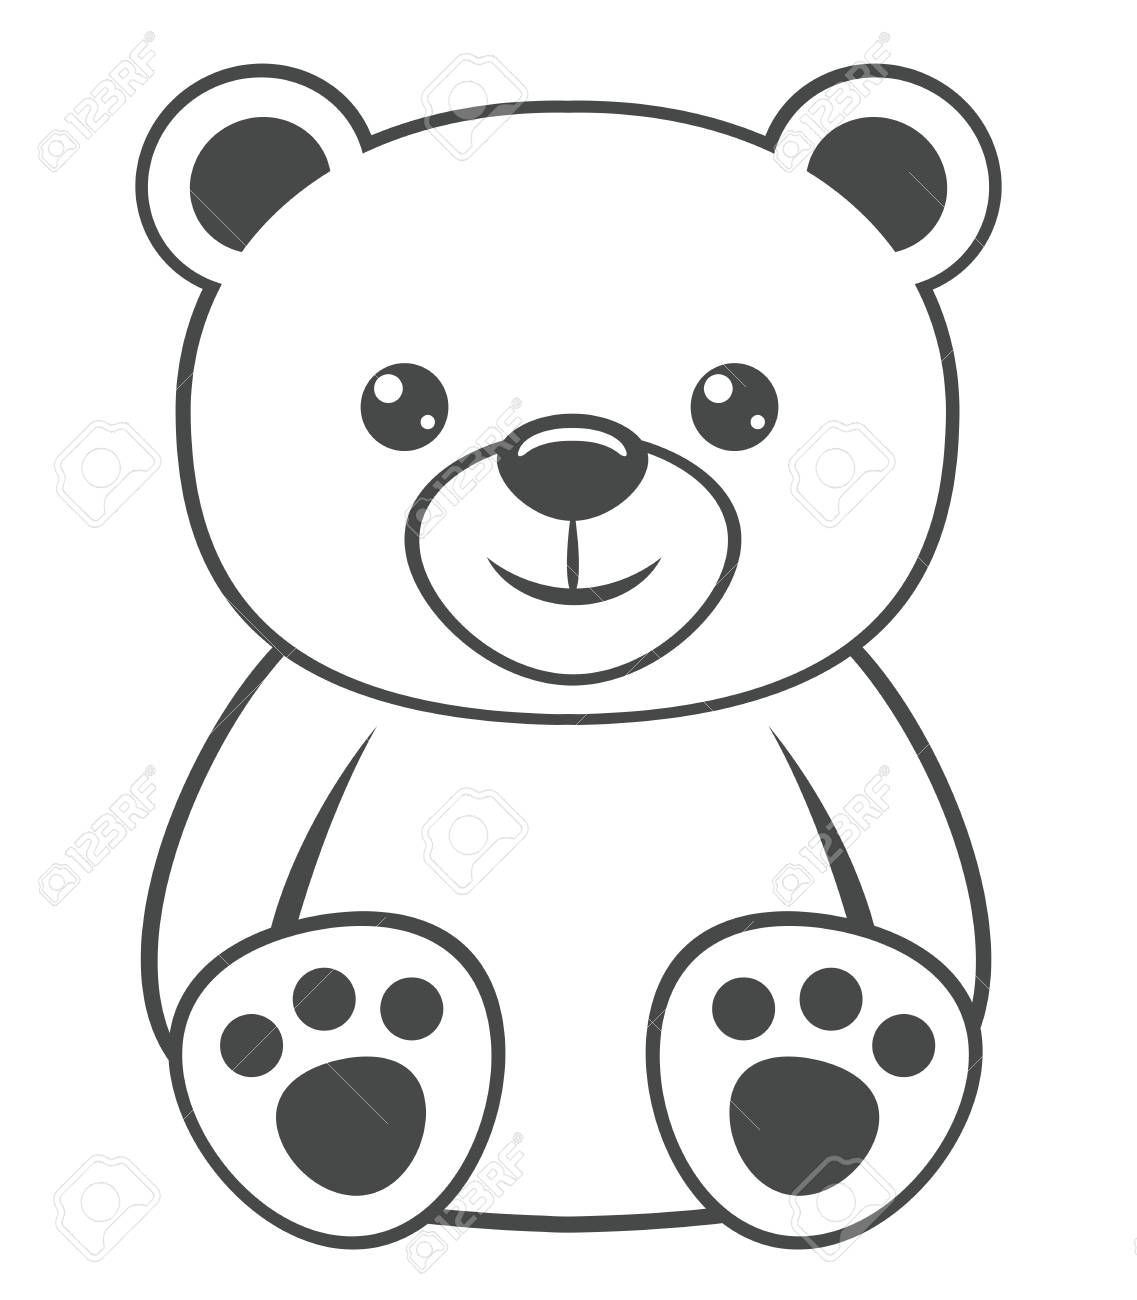 Teddy Bear In Gift Box Vector Illustration, Line Design Icon Royalty Free  Cliparts, Vectors, And Stock Illustration. Image 139347599.